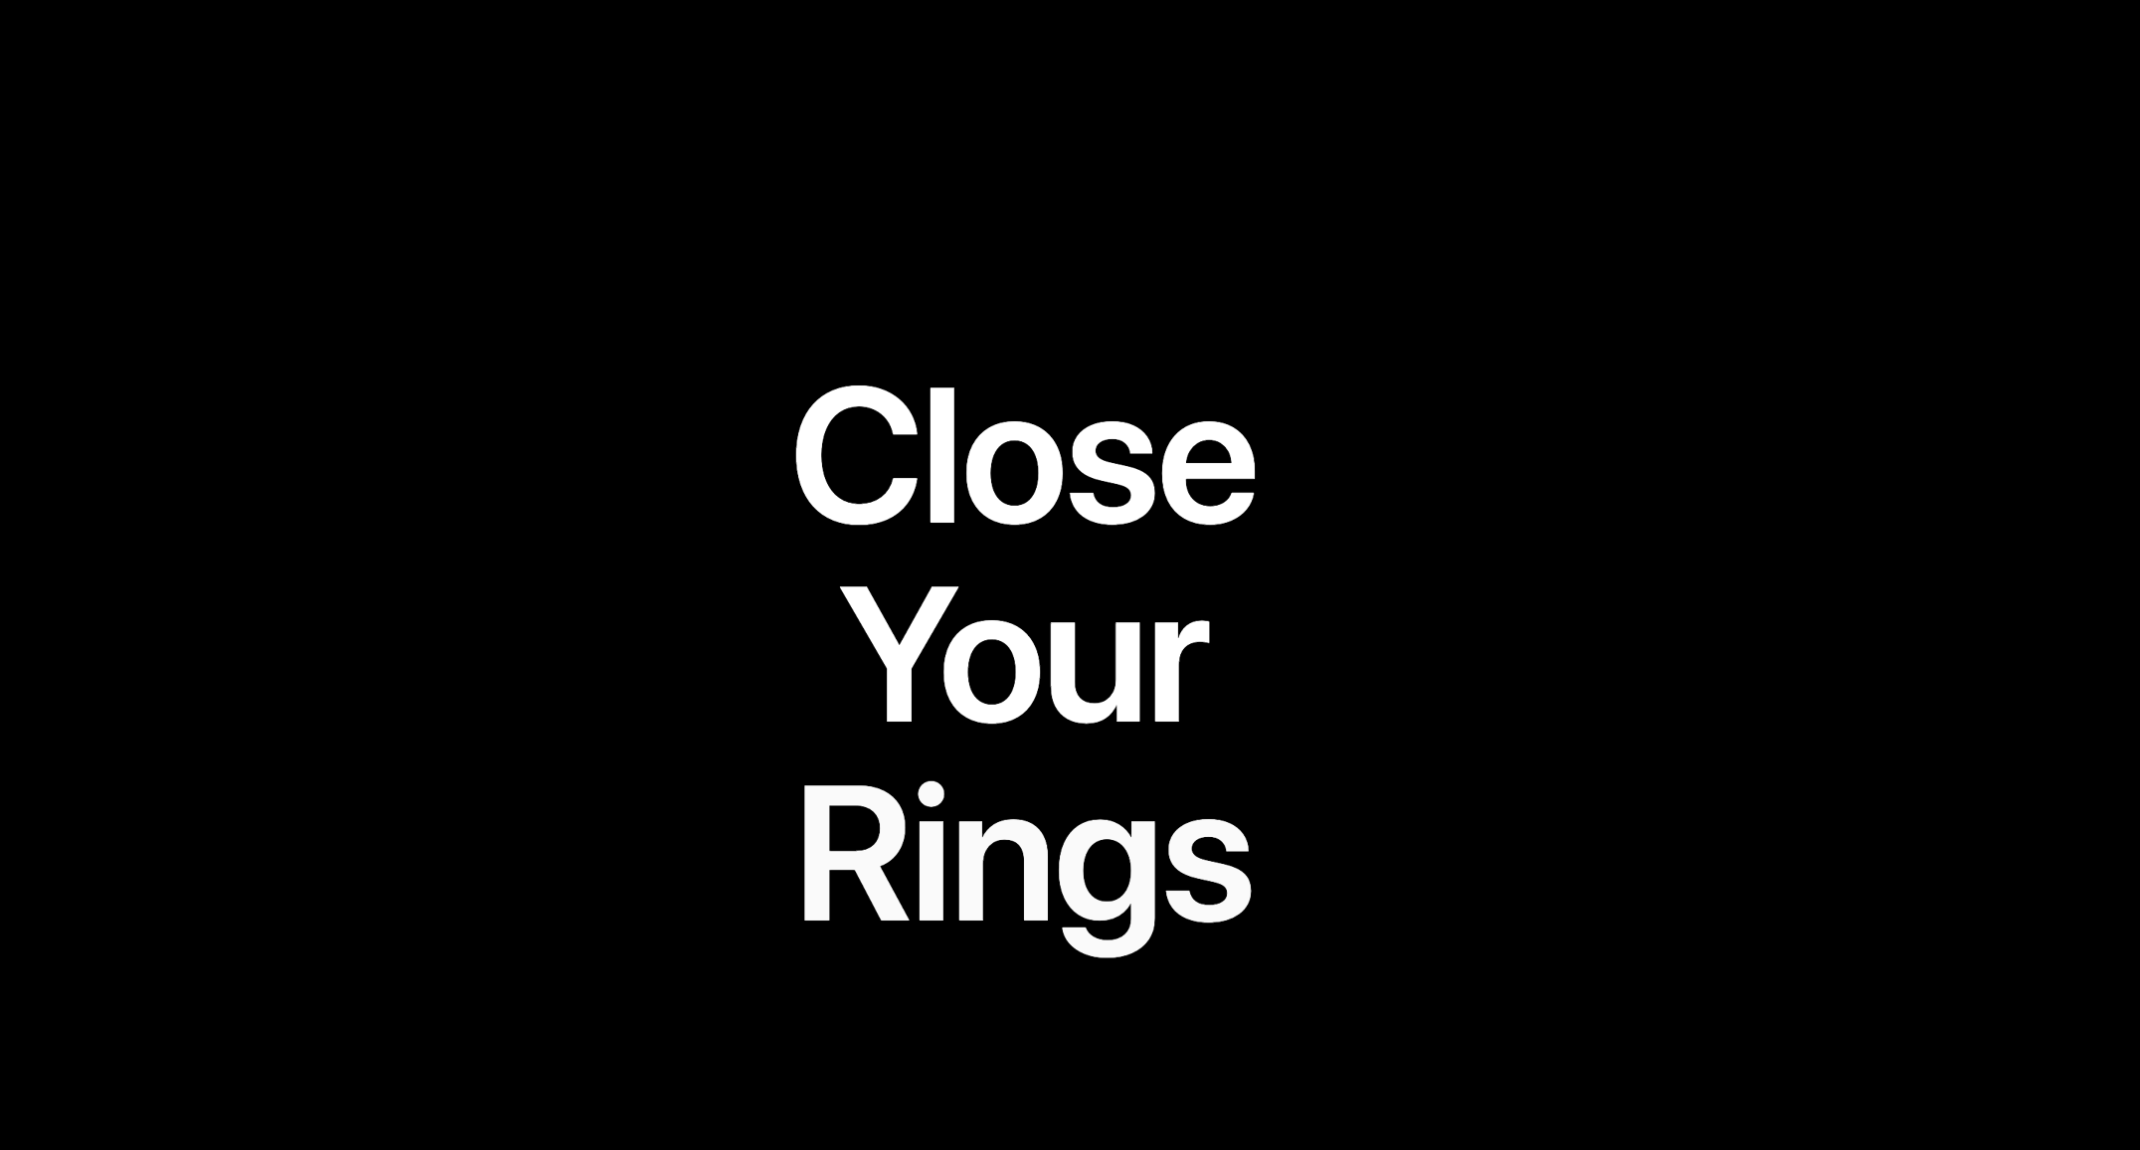 An ominous graphic from the Apple Watch Activity website that reads 'Close Your Rings'.